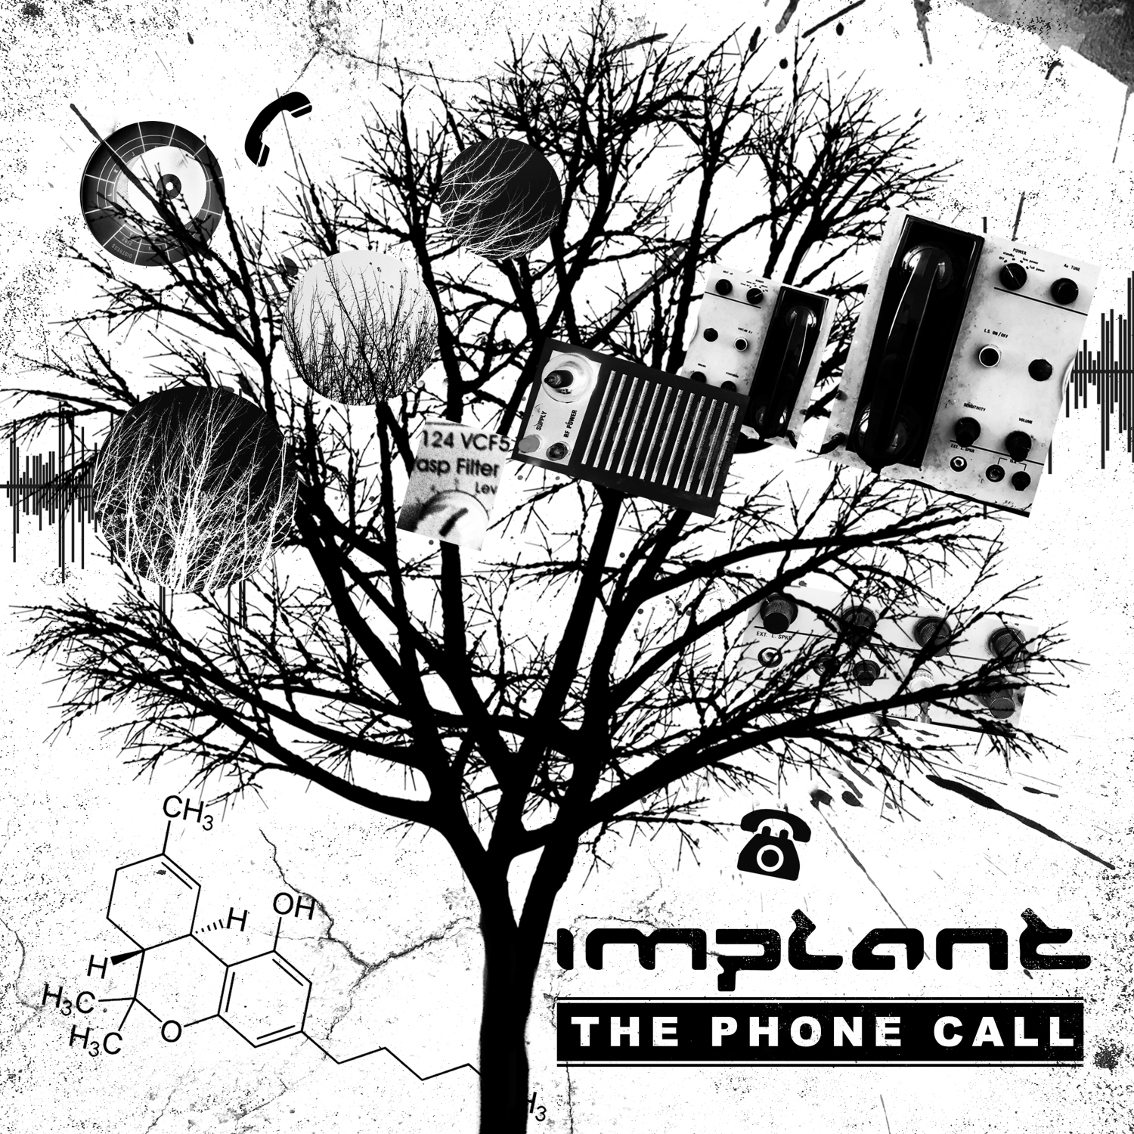 Belgium S Industrial Act Implant Returns With 8 Track